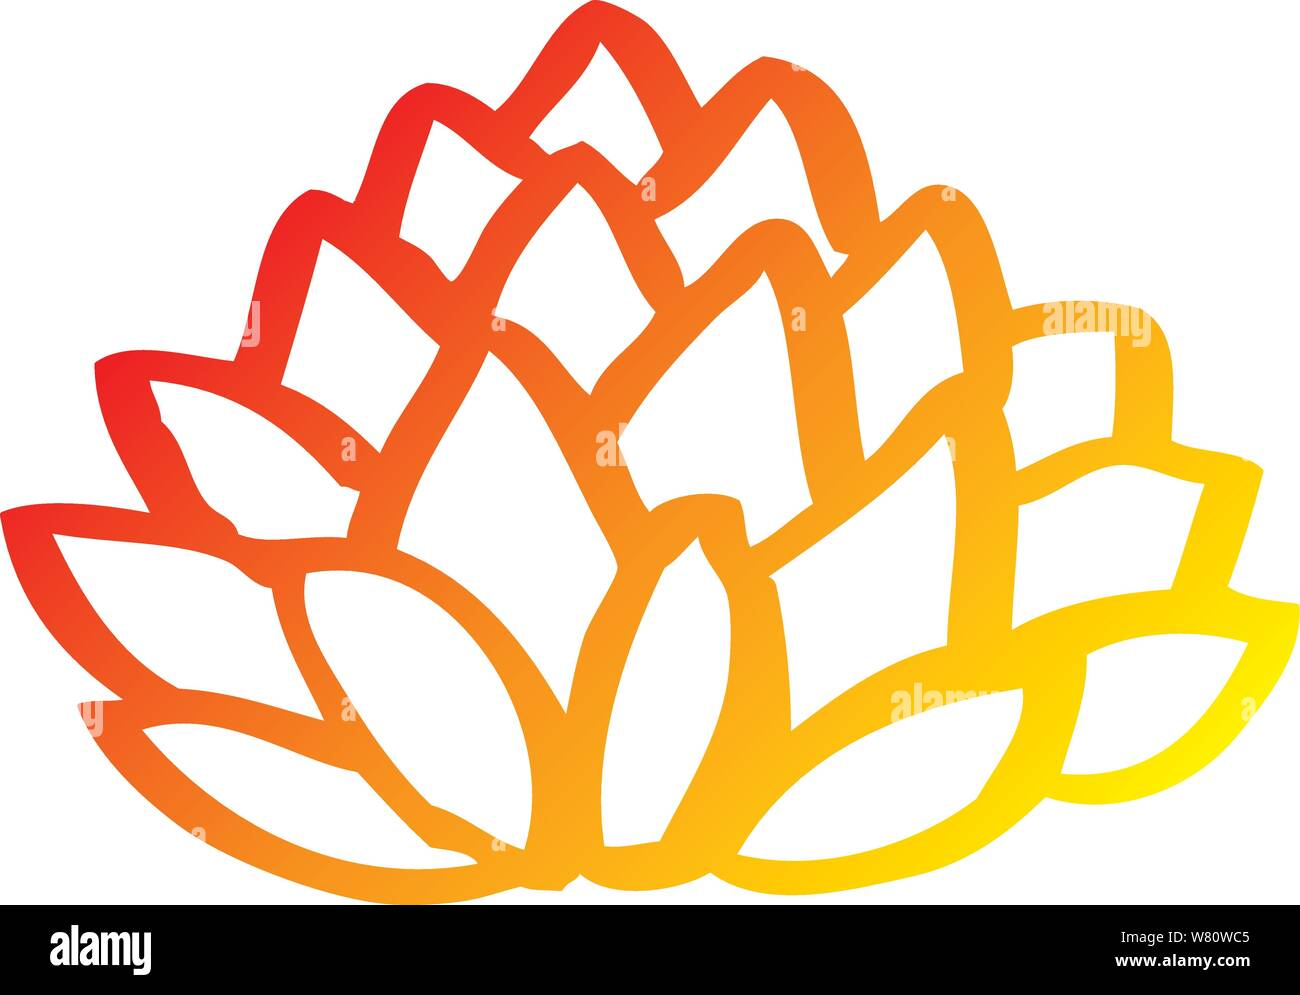 Warm Gradient Line Drawing Of A Cartoon Pile Of Leaves Stock Vector Image Art Alamy